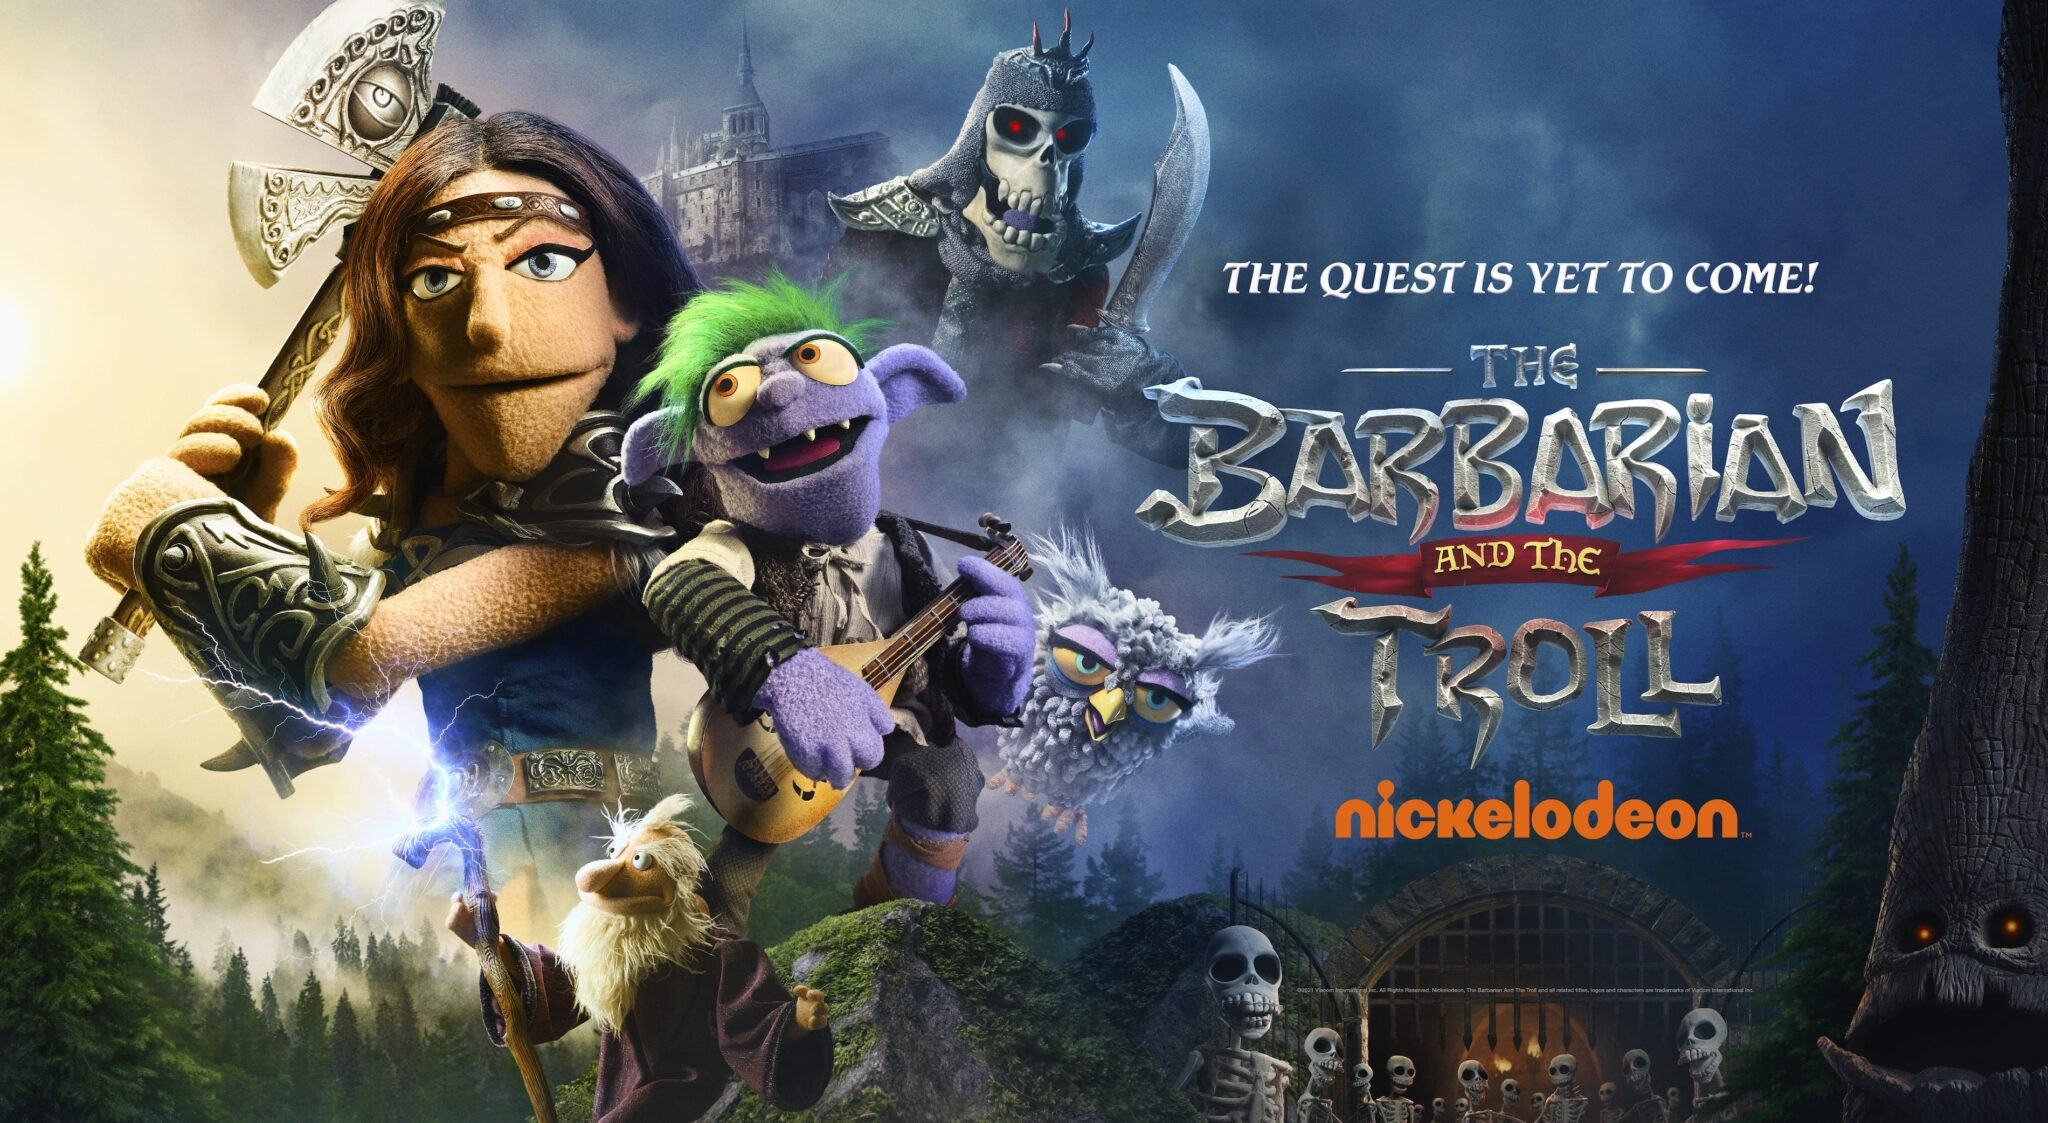 The Barbarian and the Troll, Nickelodeon